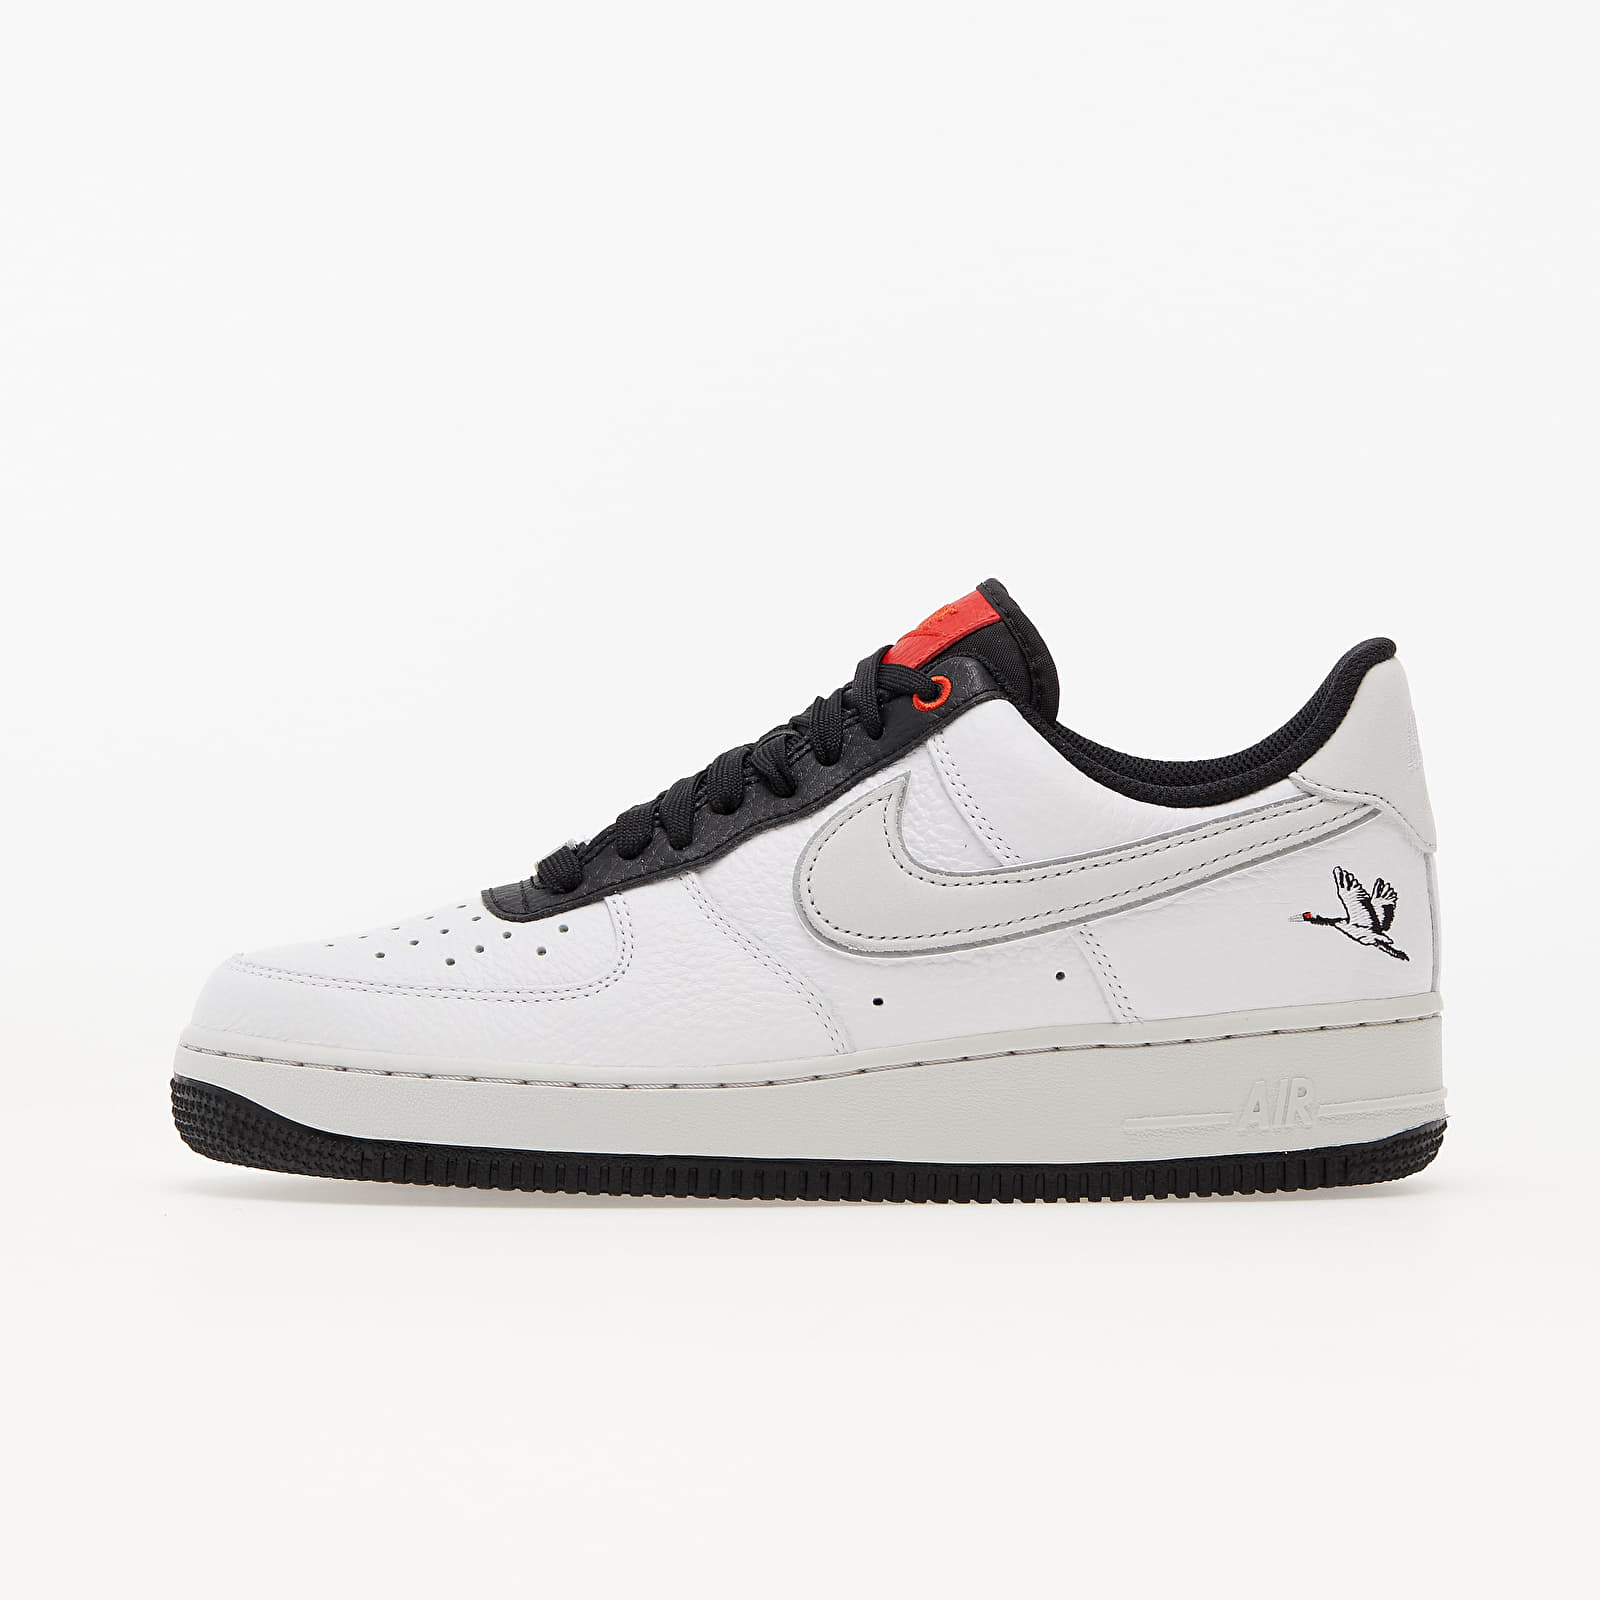 Nike Air Force 1 '07 LX White/ Photon Dust-Black-Chile Red EUR 38